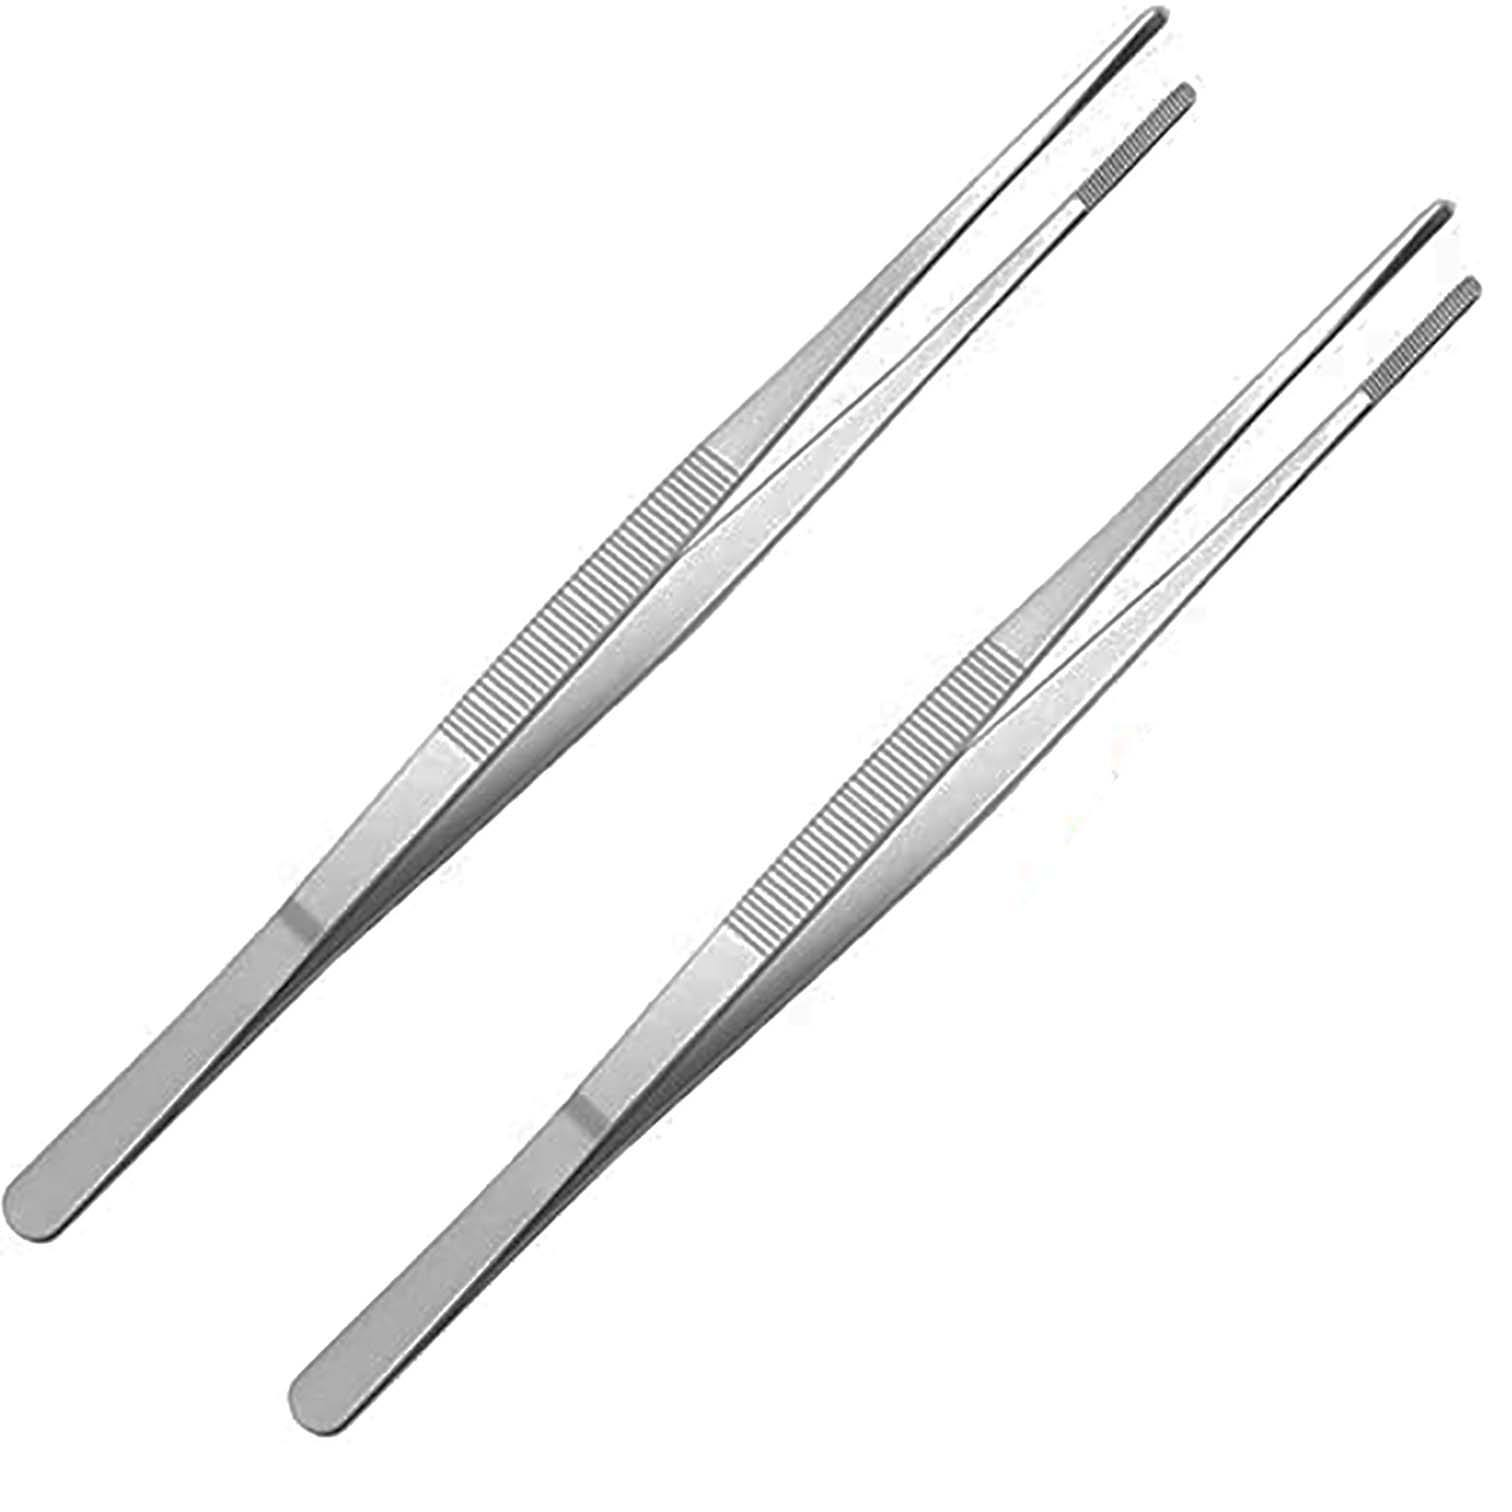 Stainless Steel BBQ Cooking Pincer Narrow Tweezer Tongs Needle Nose Pointy